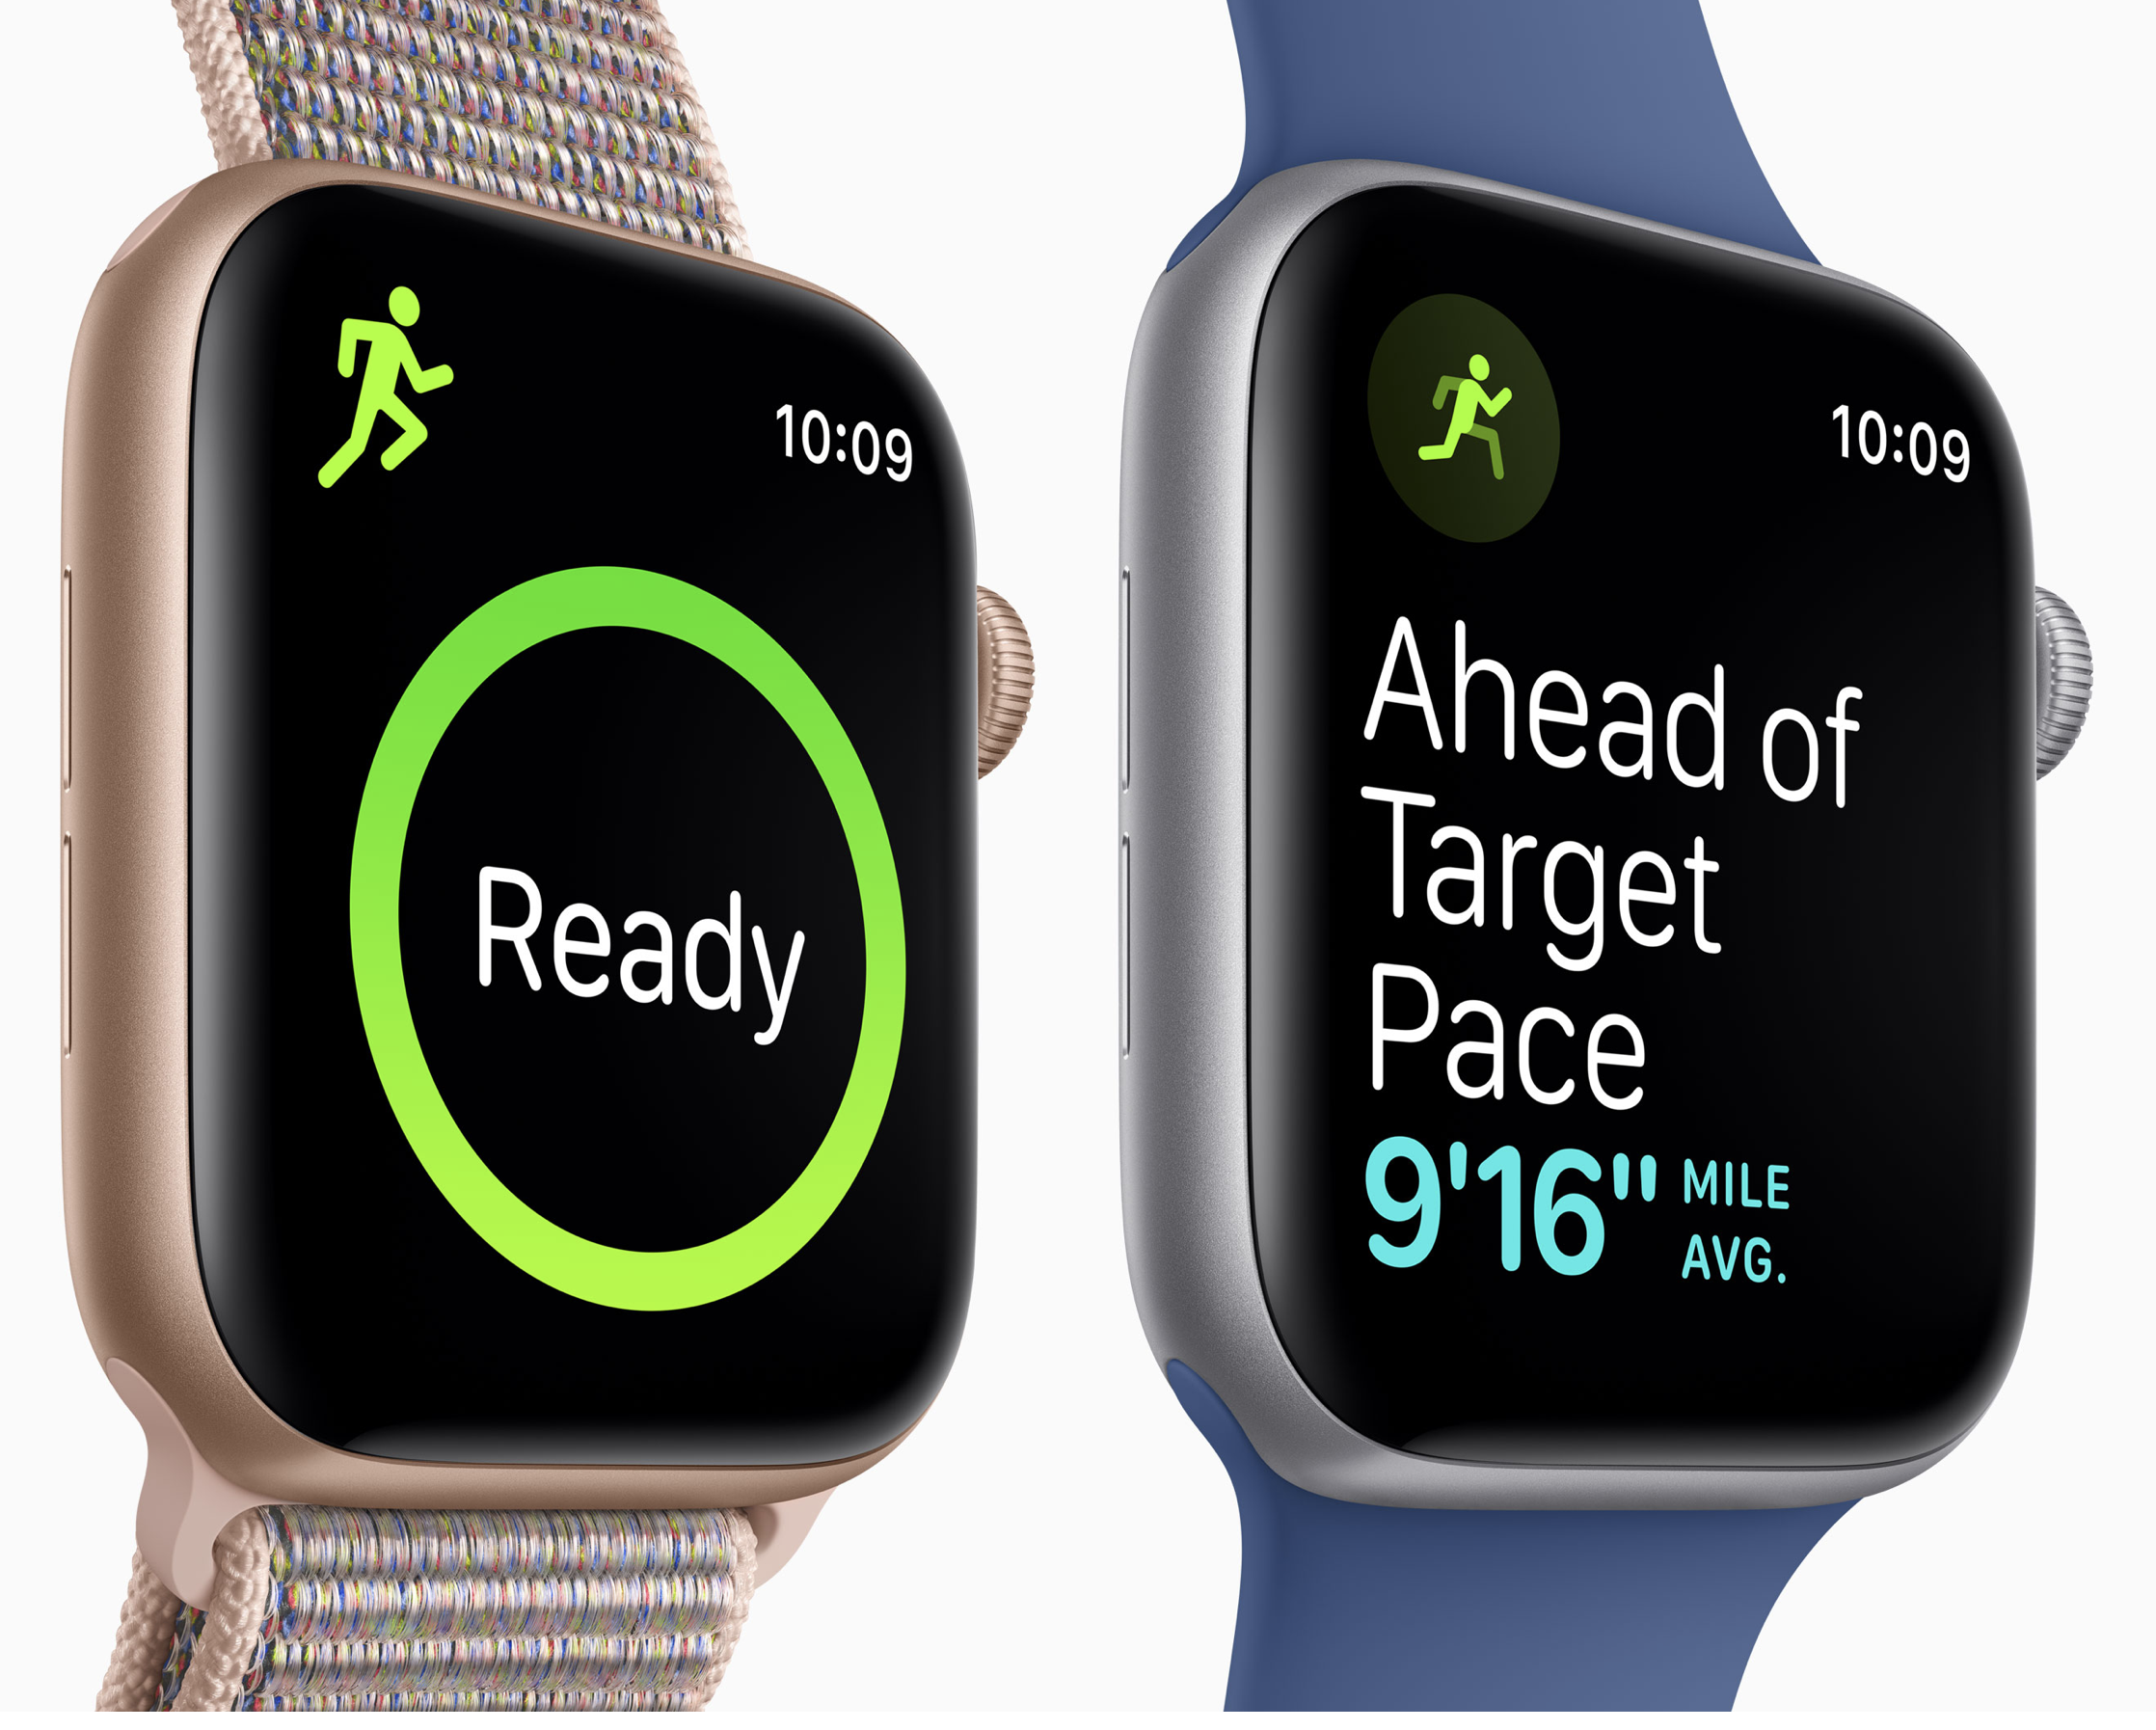 Apple Watch Series 4  - This watch is now fully waterproof and adds GPS with cellular to the watch so you can head out to train without your iPhone. Features wrist based heart rate monitoring that has improved greatly from previous models. Battery life in full training/gps mode is 6-8 hours of full use. The watch in general lasts 24+ hours. It also records HRV and is a great sleep tracking tool.